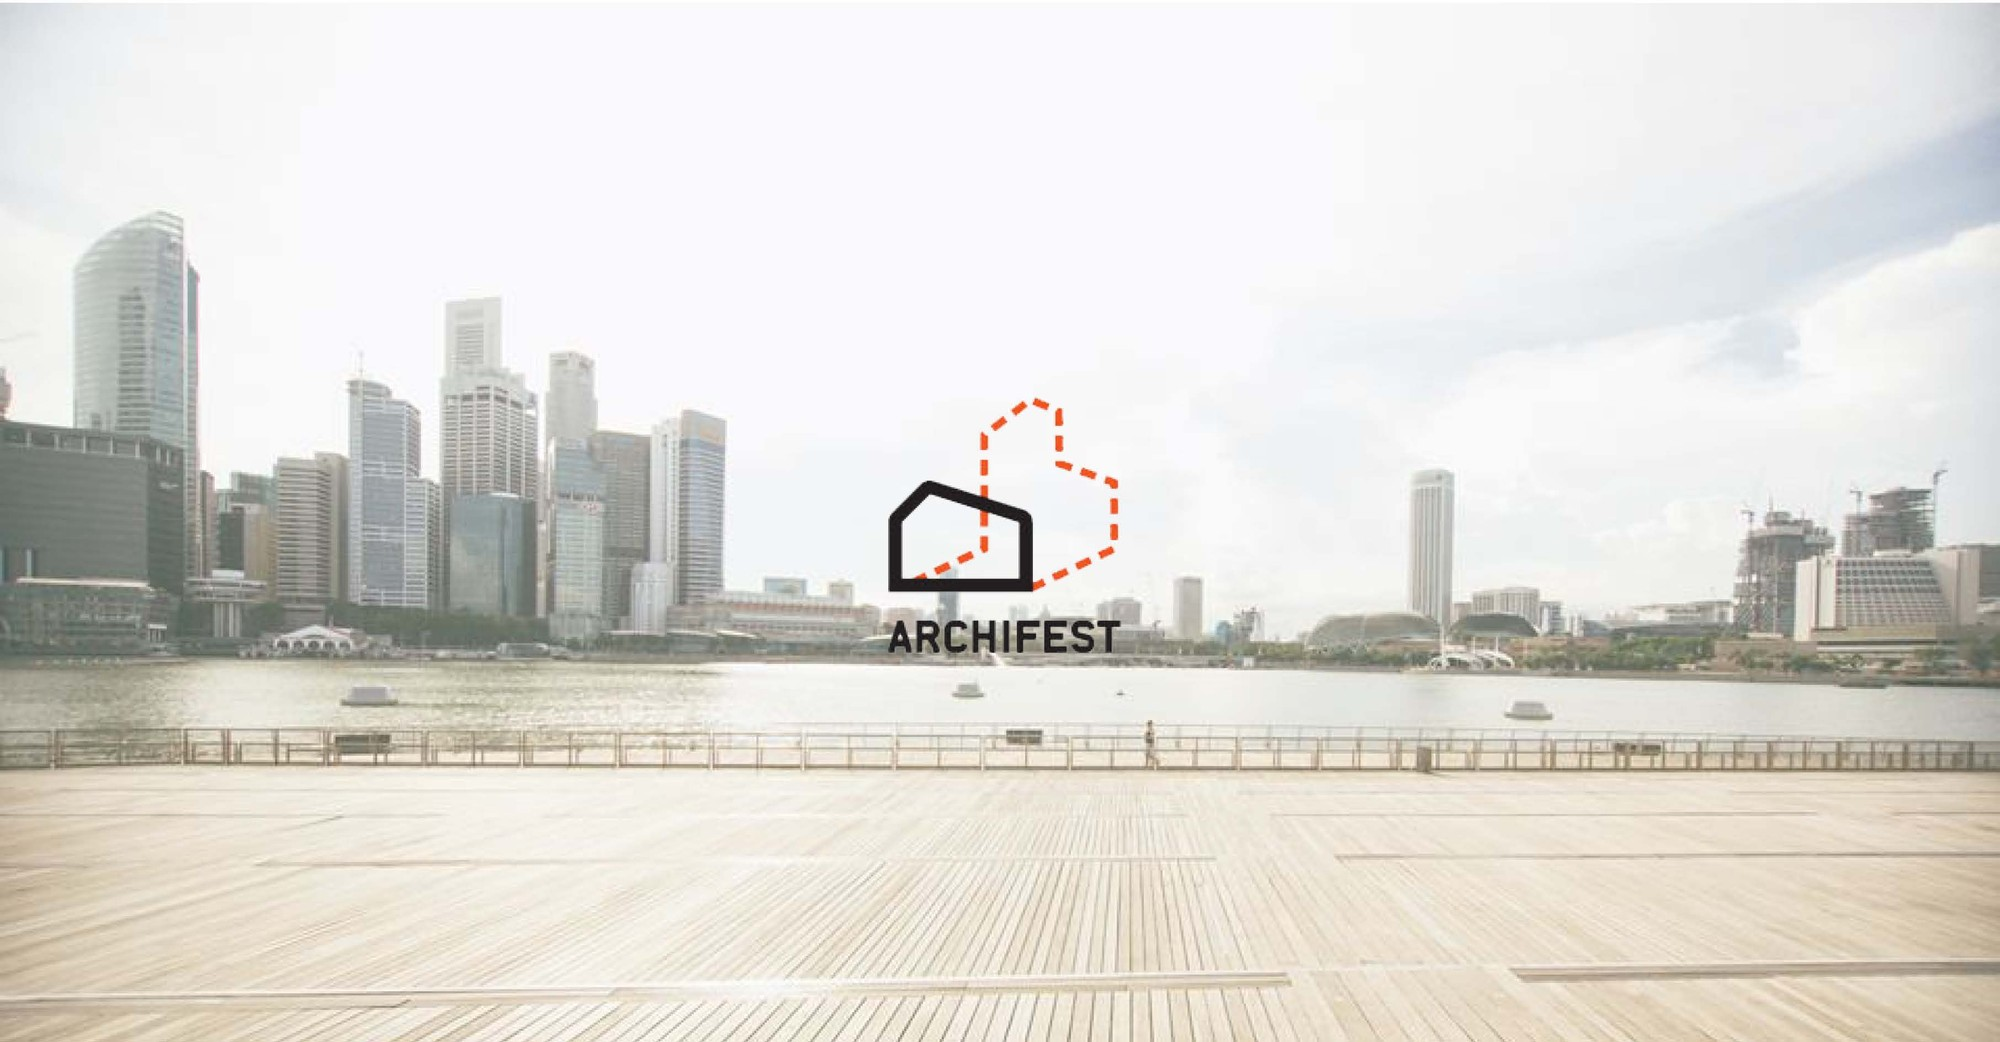 Archifest 2014: Exploring CROWD In Singapore, Courtesy of Archifest and PLUS